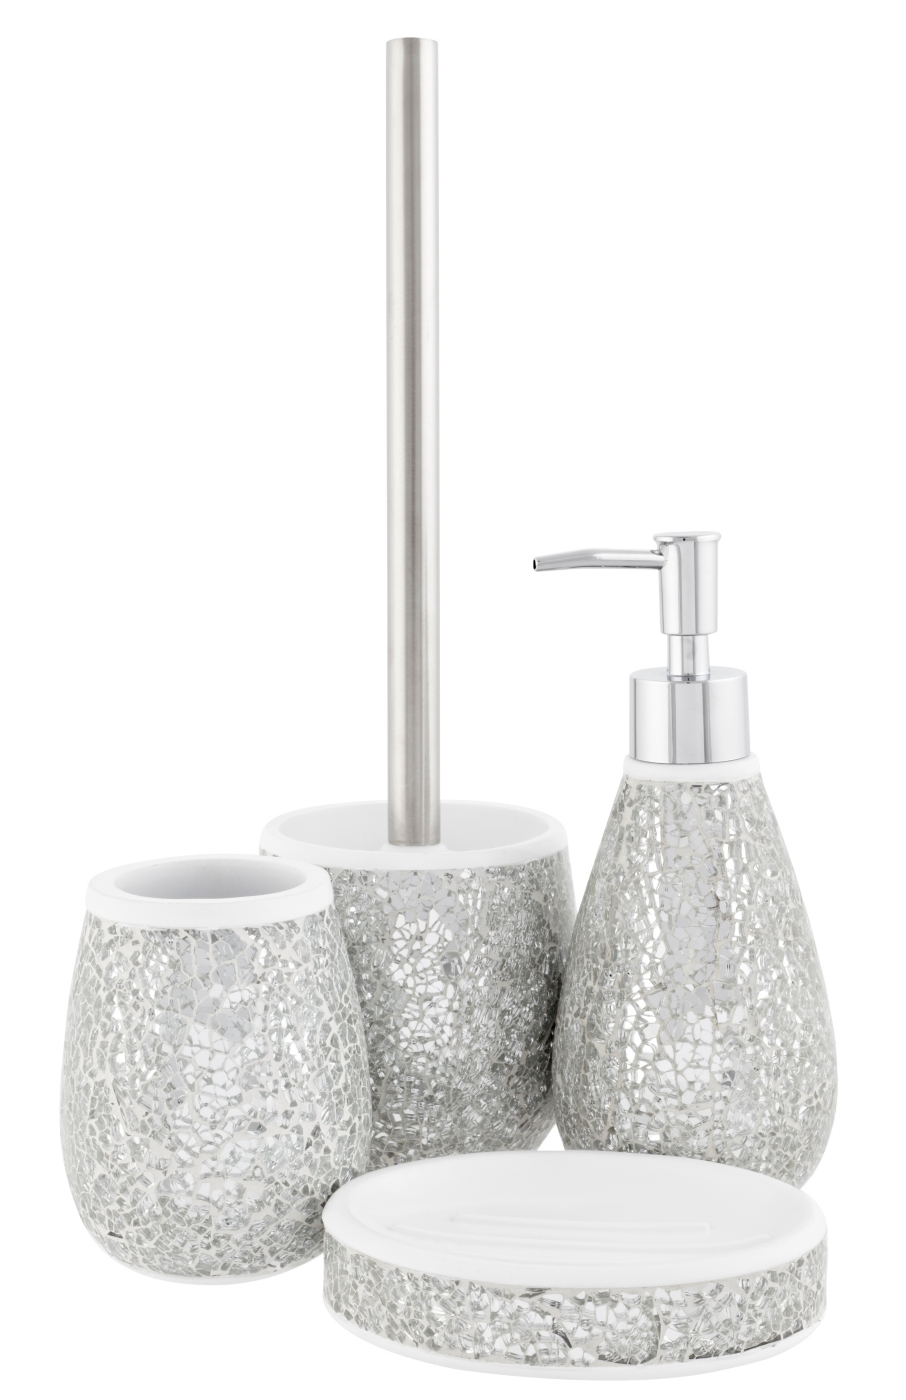 bathroom accessories glitter : healthydetroiter